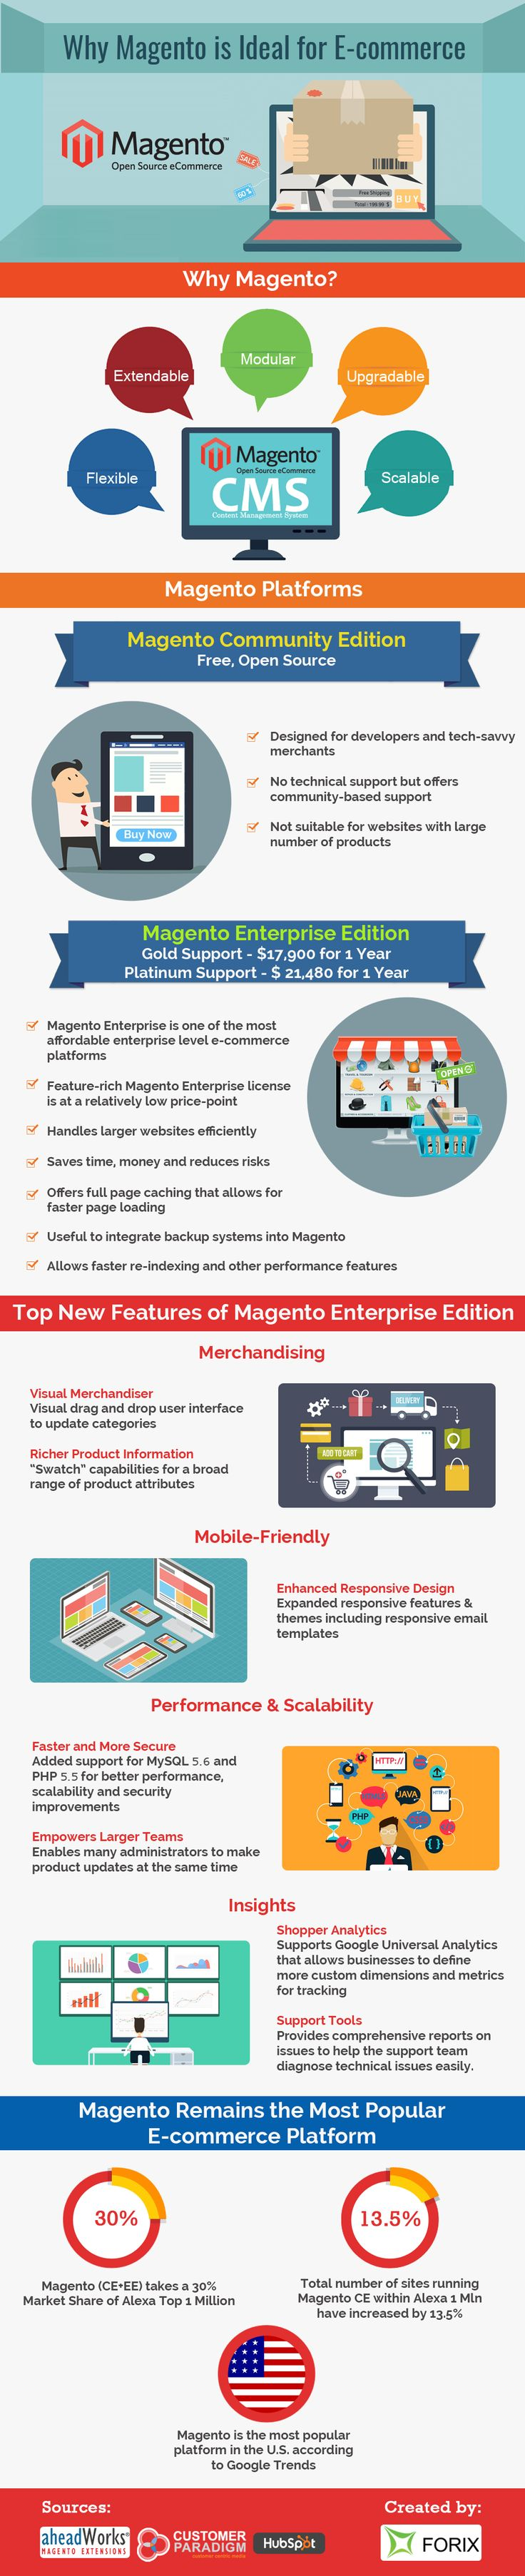 best magento seo images on pinterest seo specialist social